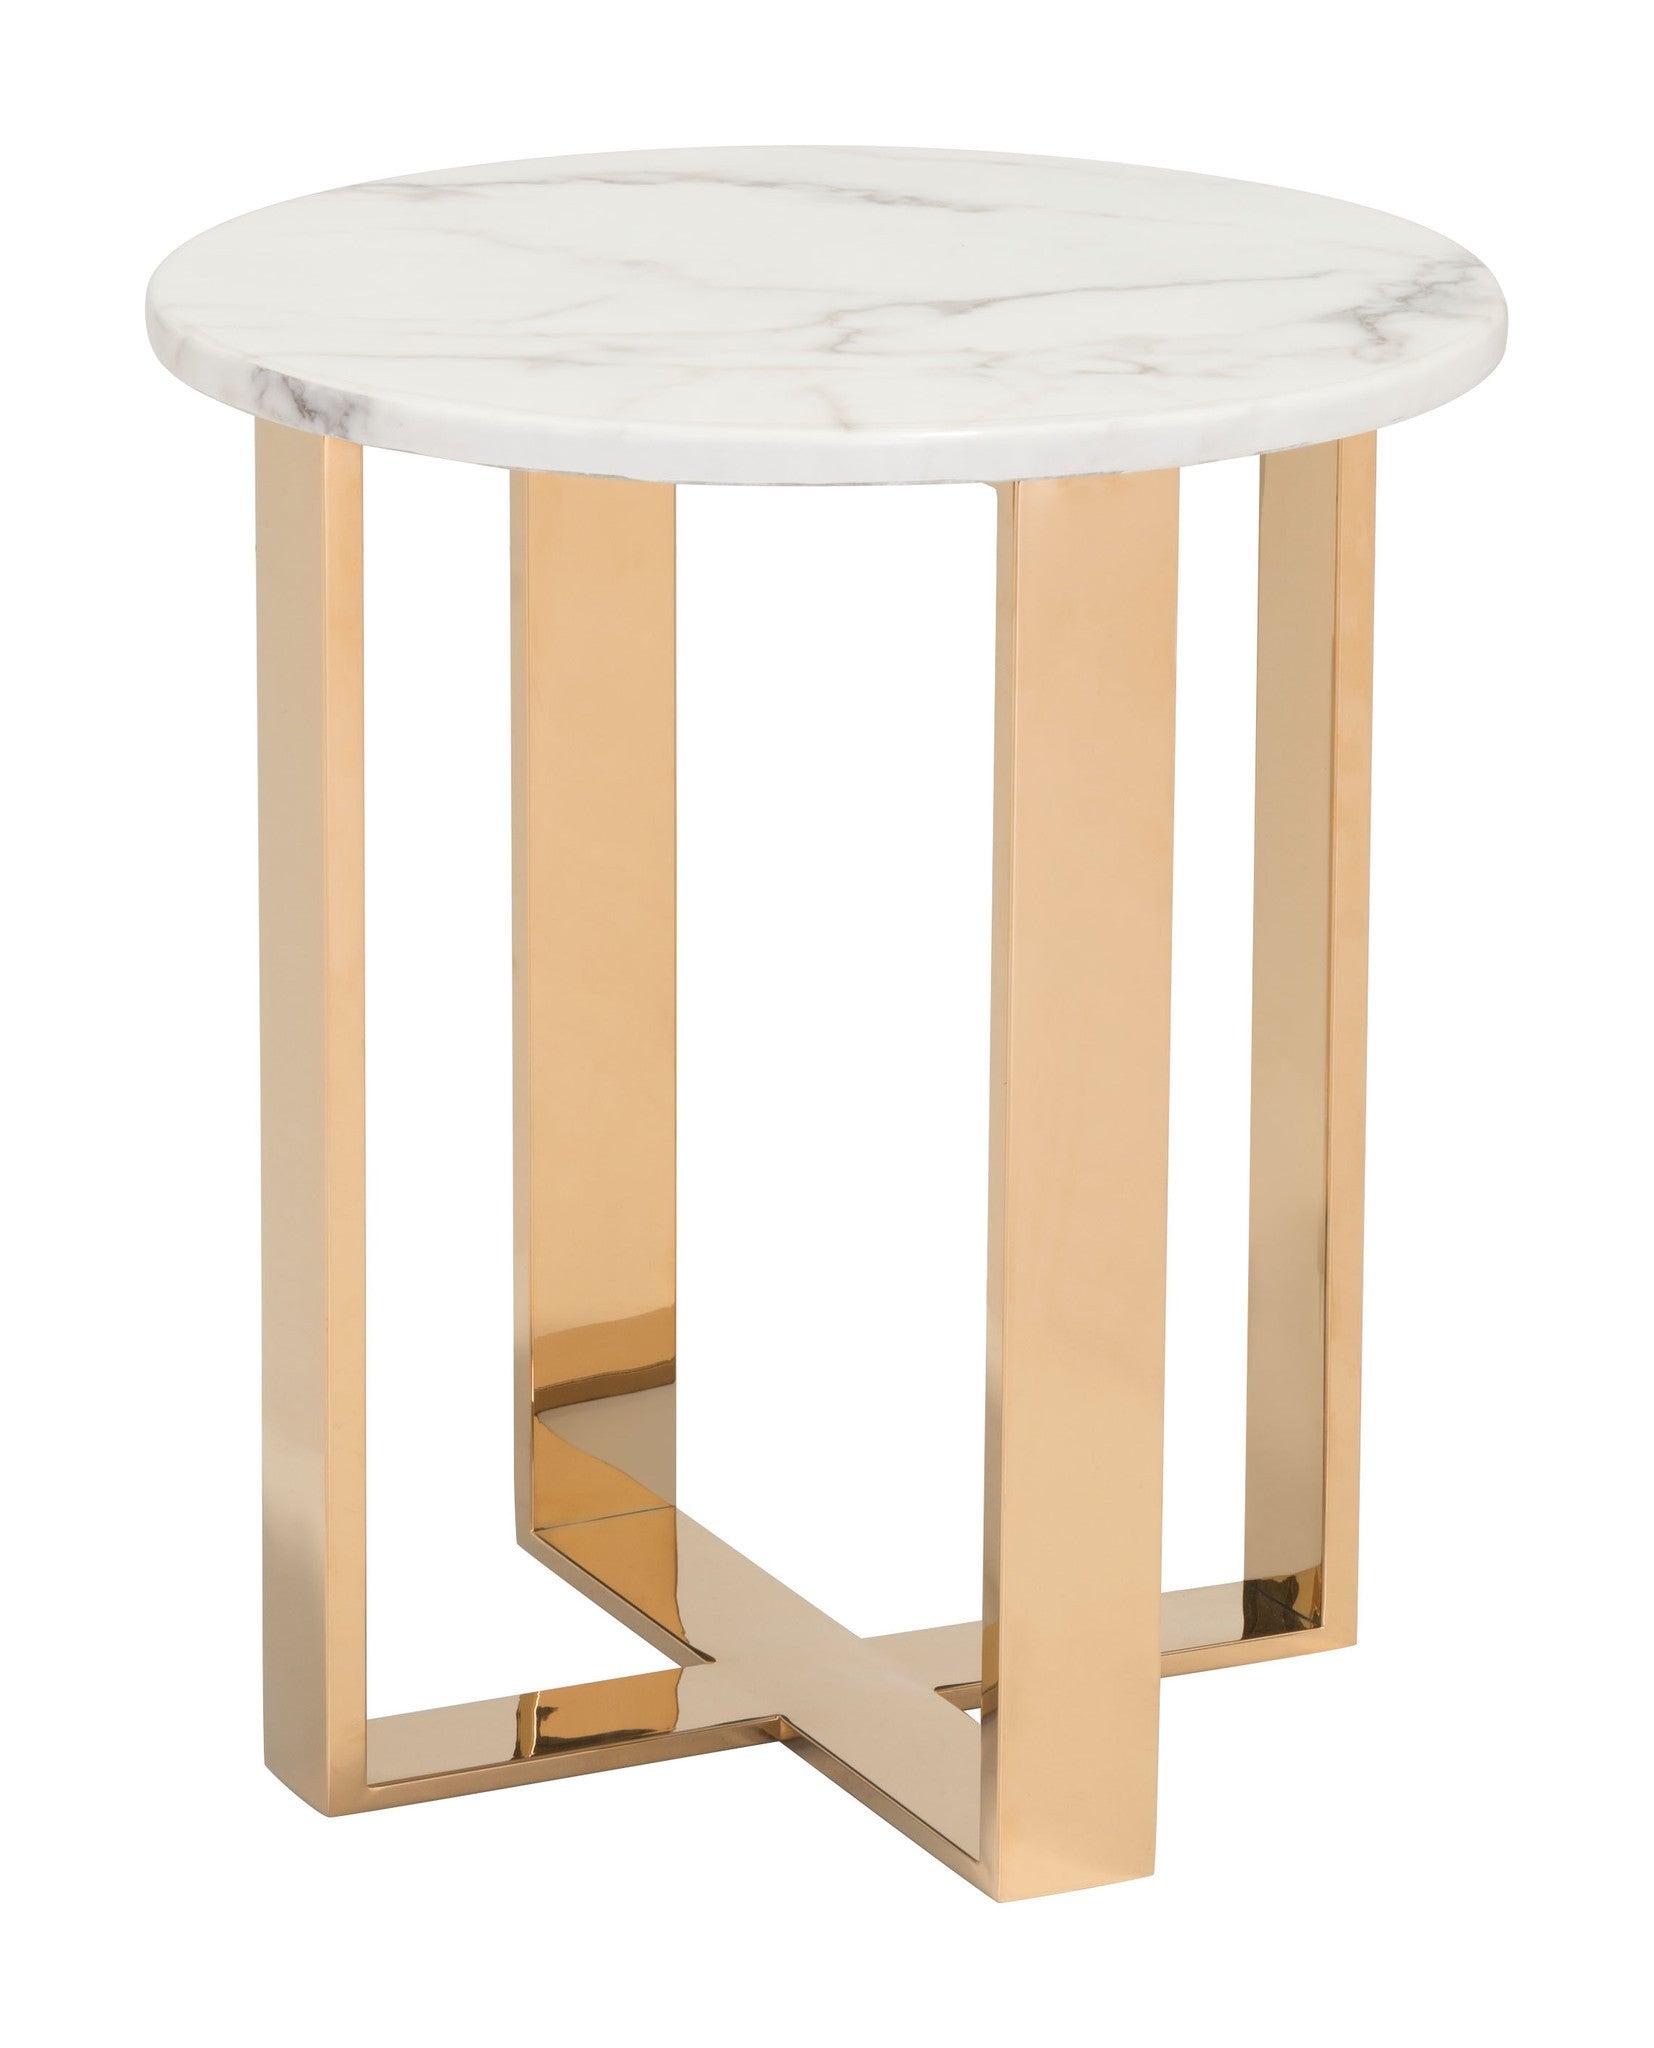 Modern, Contemporary, Rustic & Vintage Side + End Tables | Alan Decor